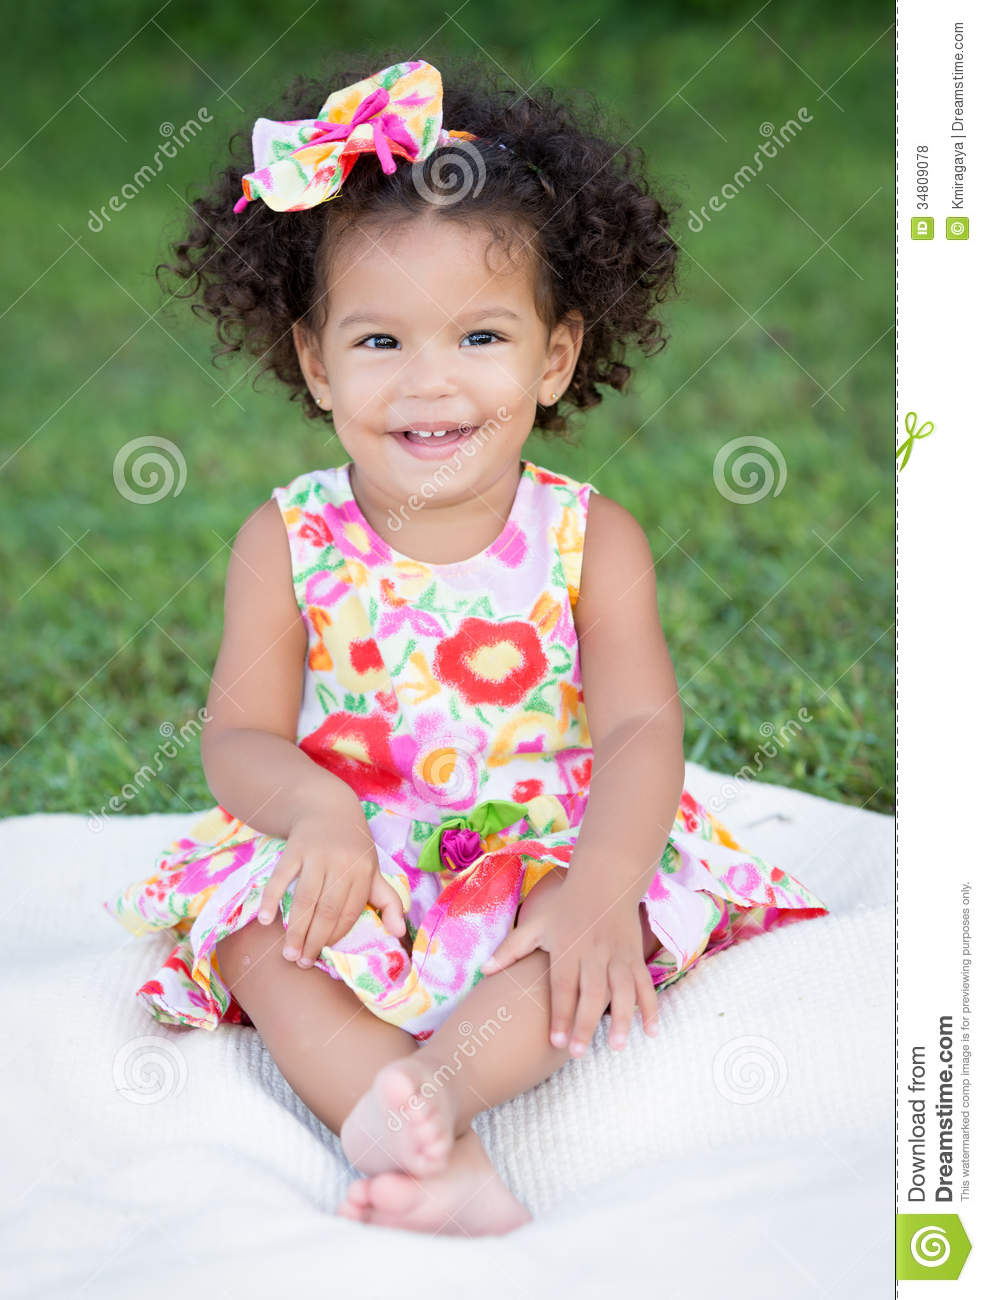 Hispanic Girl With An Afro Hairstyle Stock Photo Image